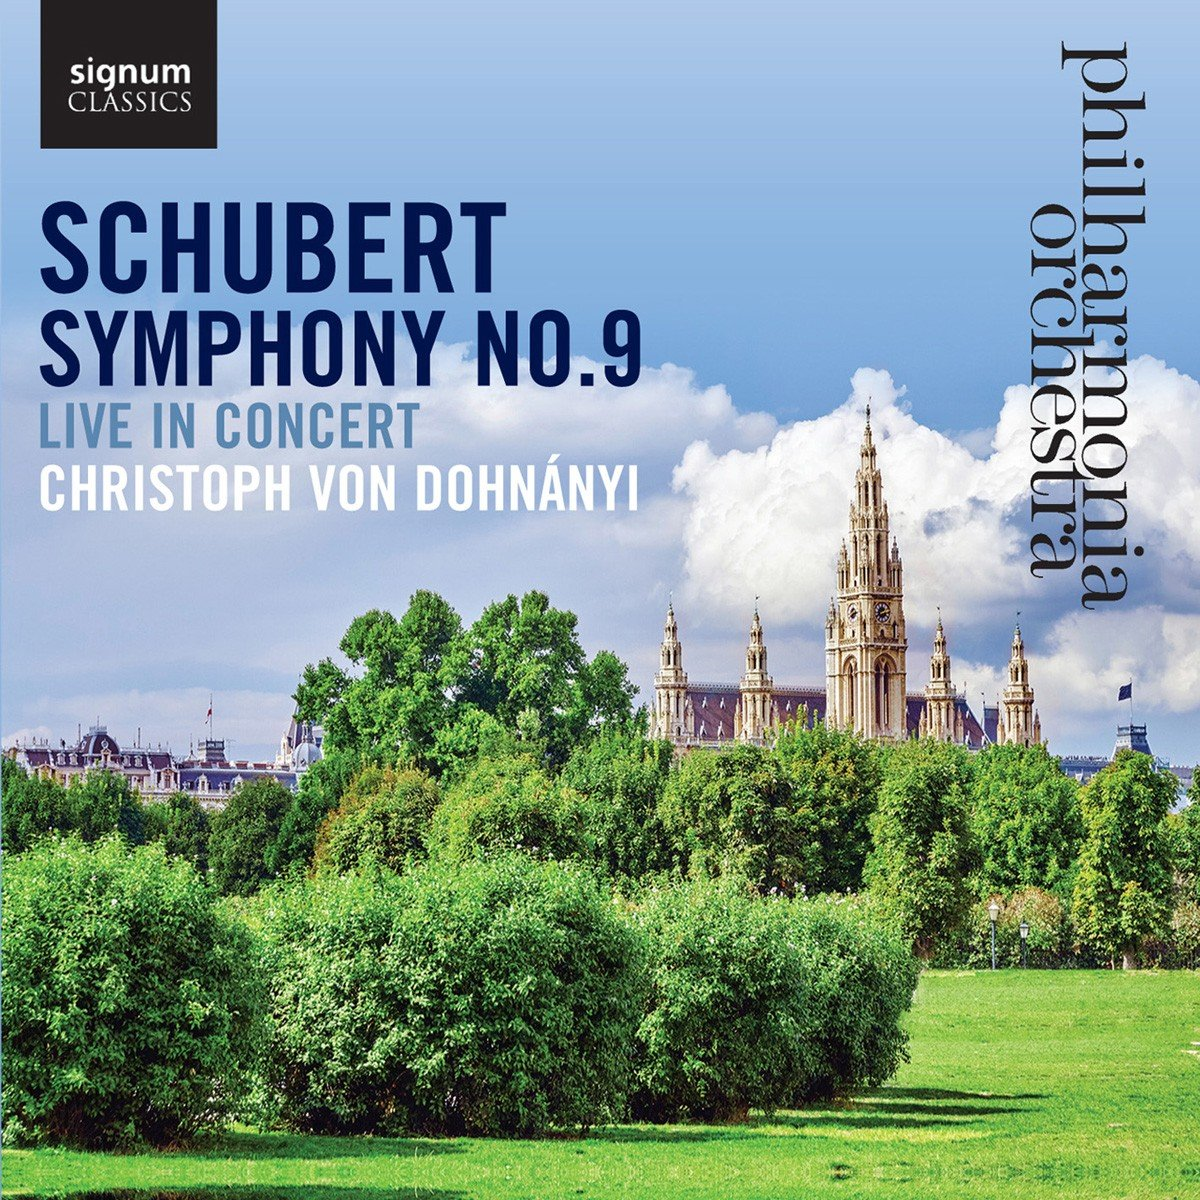 Schubert: Symphony No. 9, Live at Royal Festival Hall